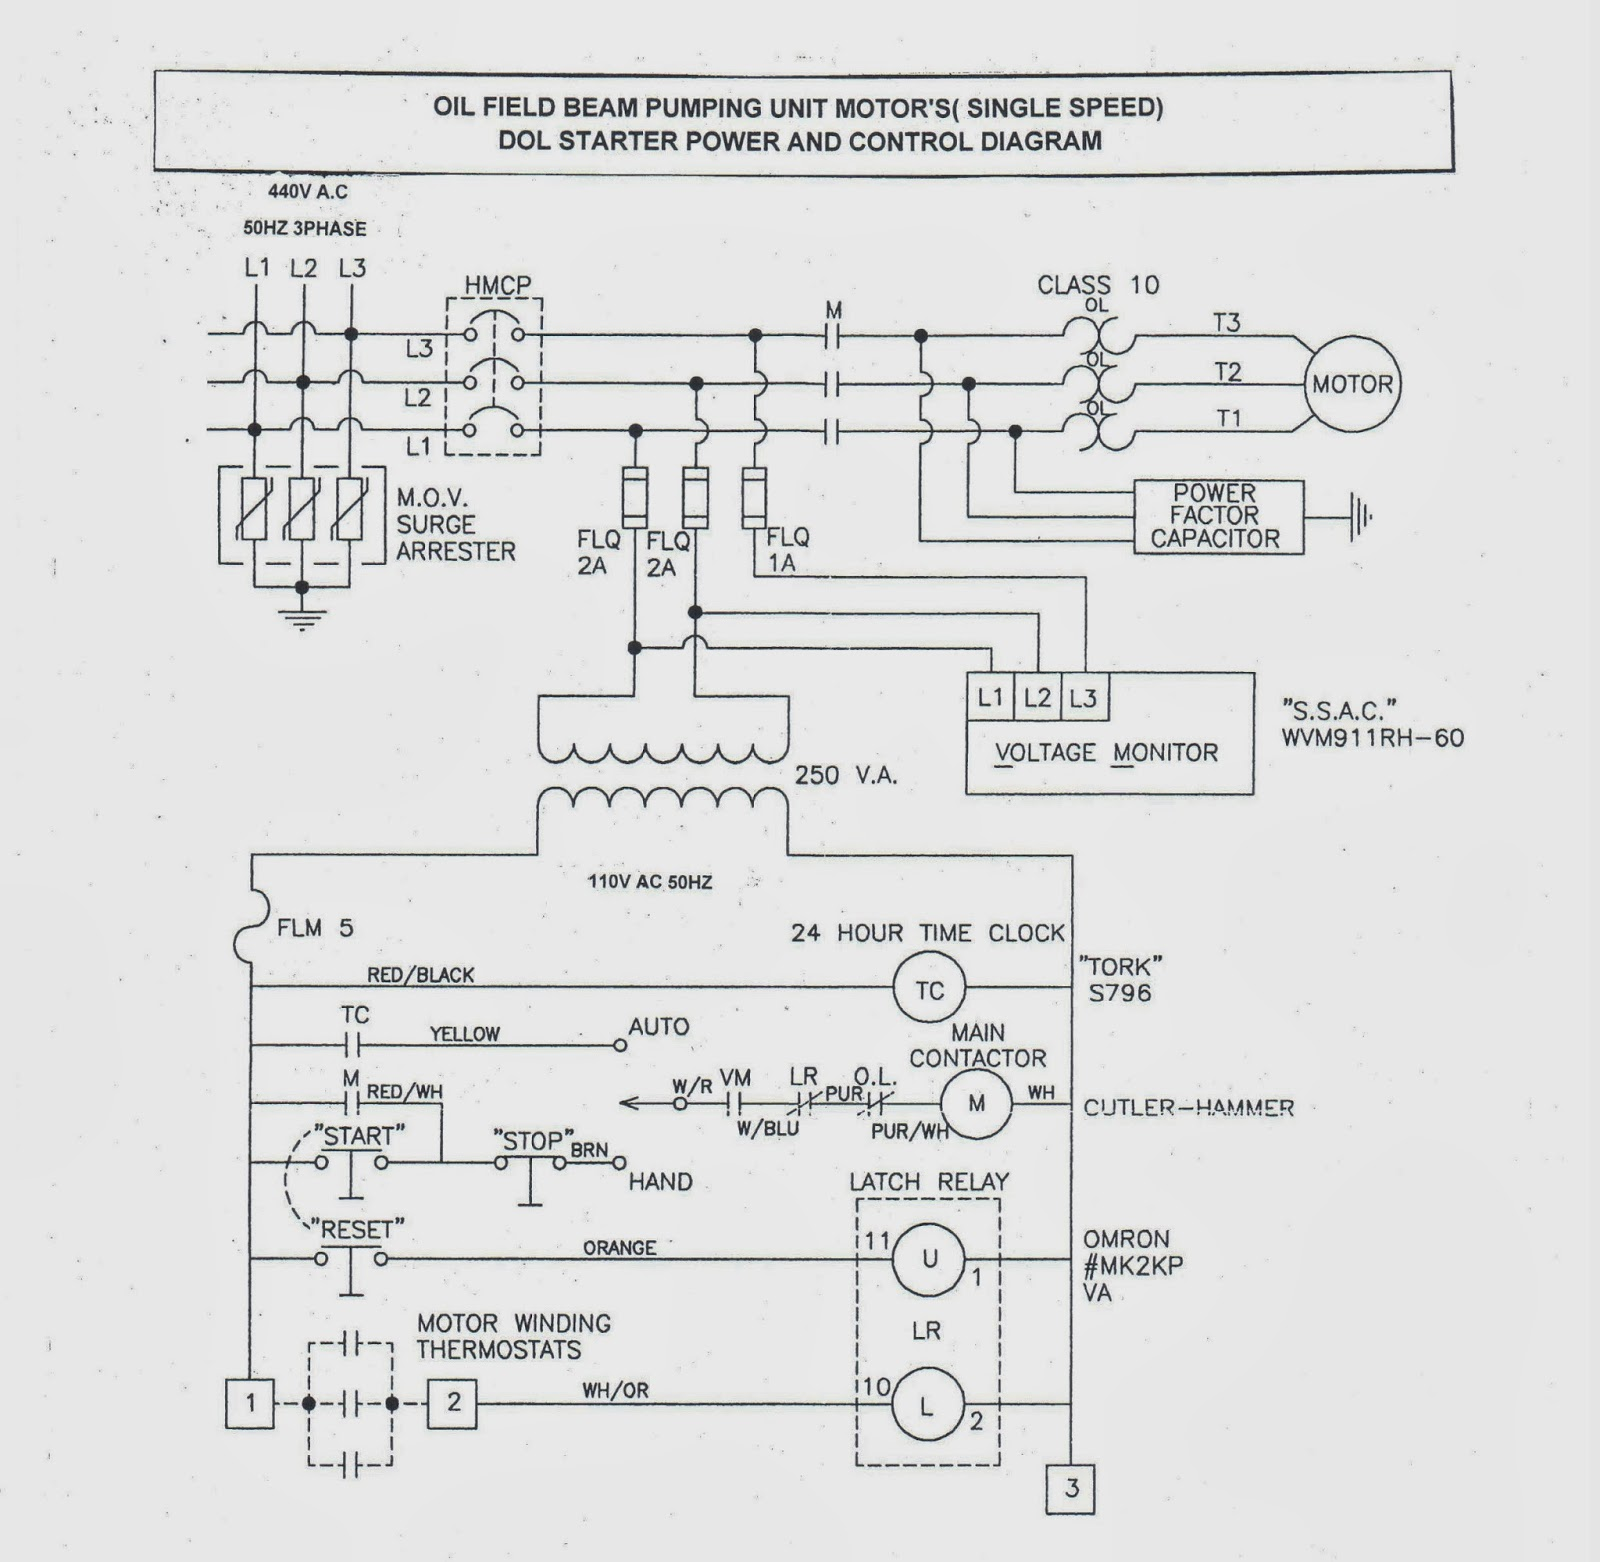 oil and gas electrical and instrumentation engineering ... wiring diagrams automotive 88 mazda 626 oilfield wiring diagrams